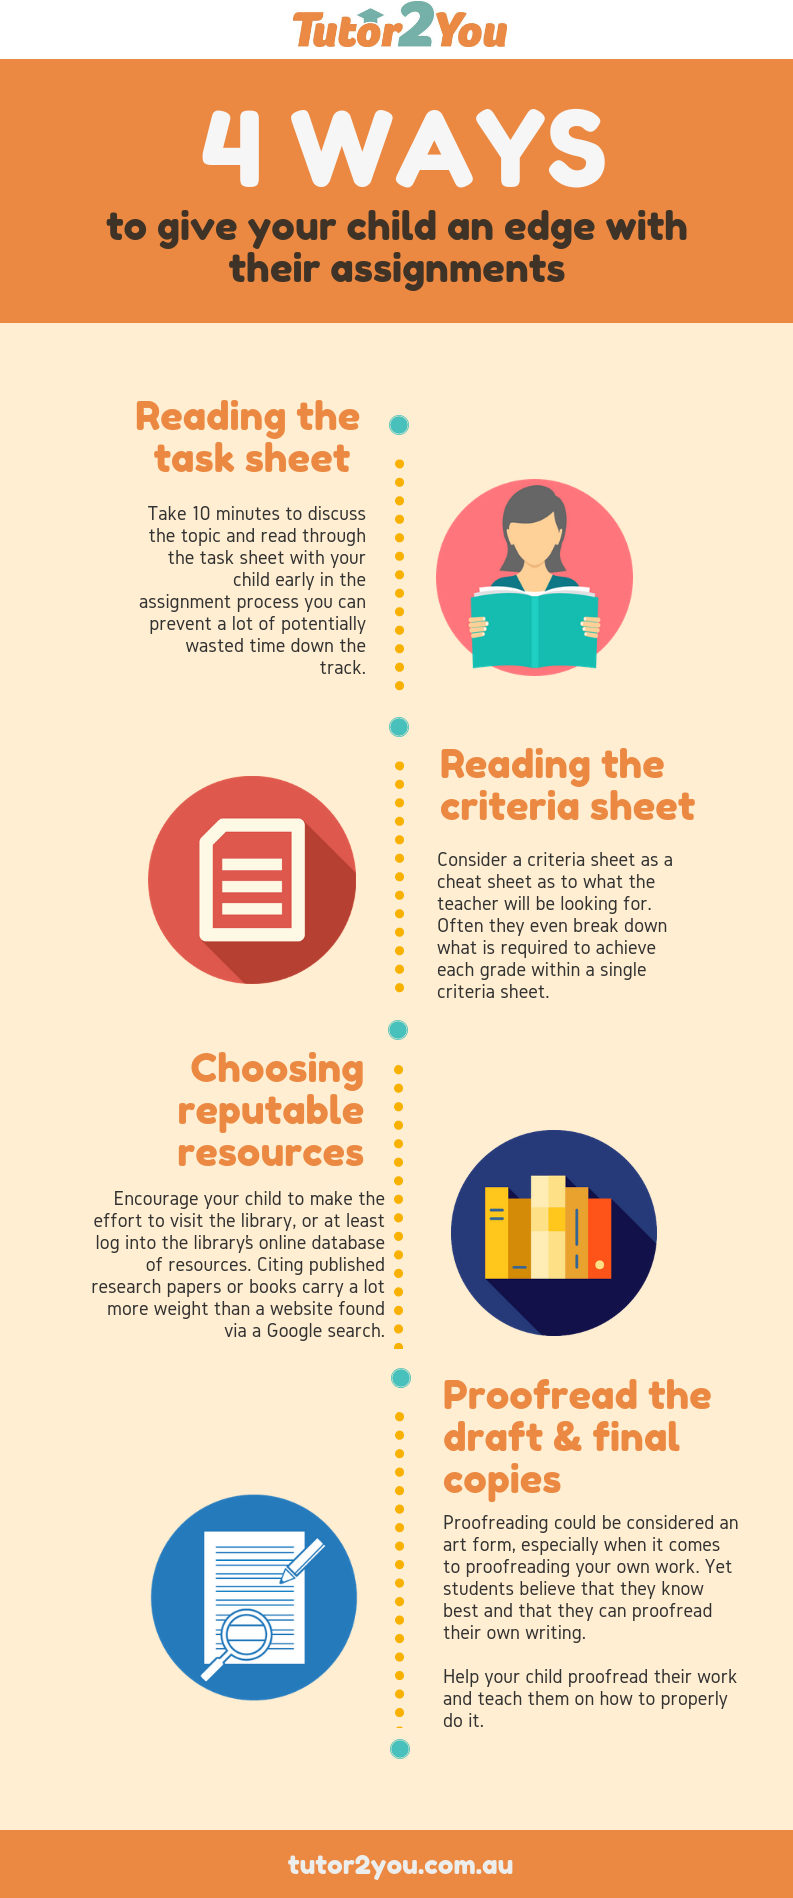 4 ways to give your child an edge with their assignments - educational infographic | Tutor2you